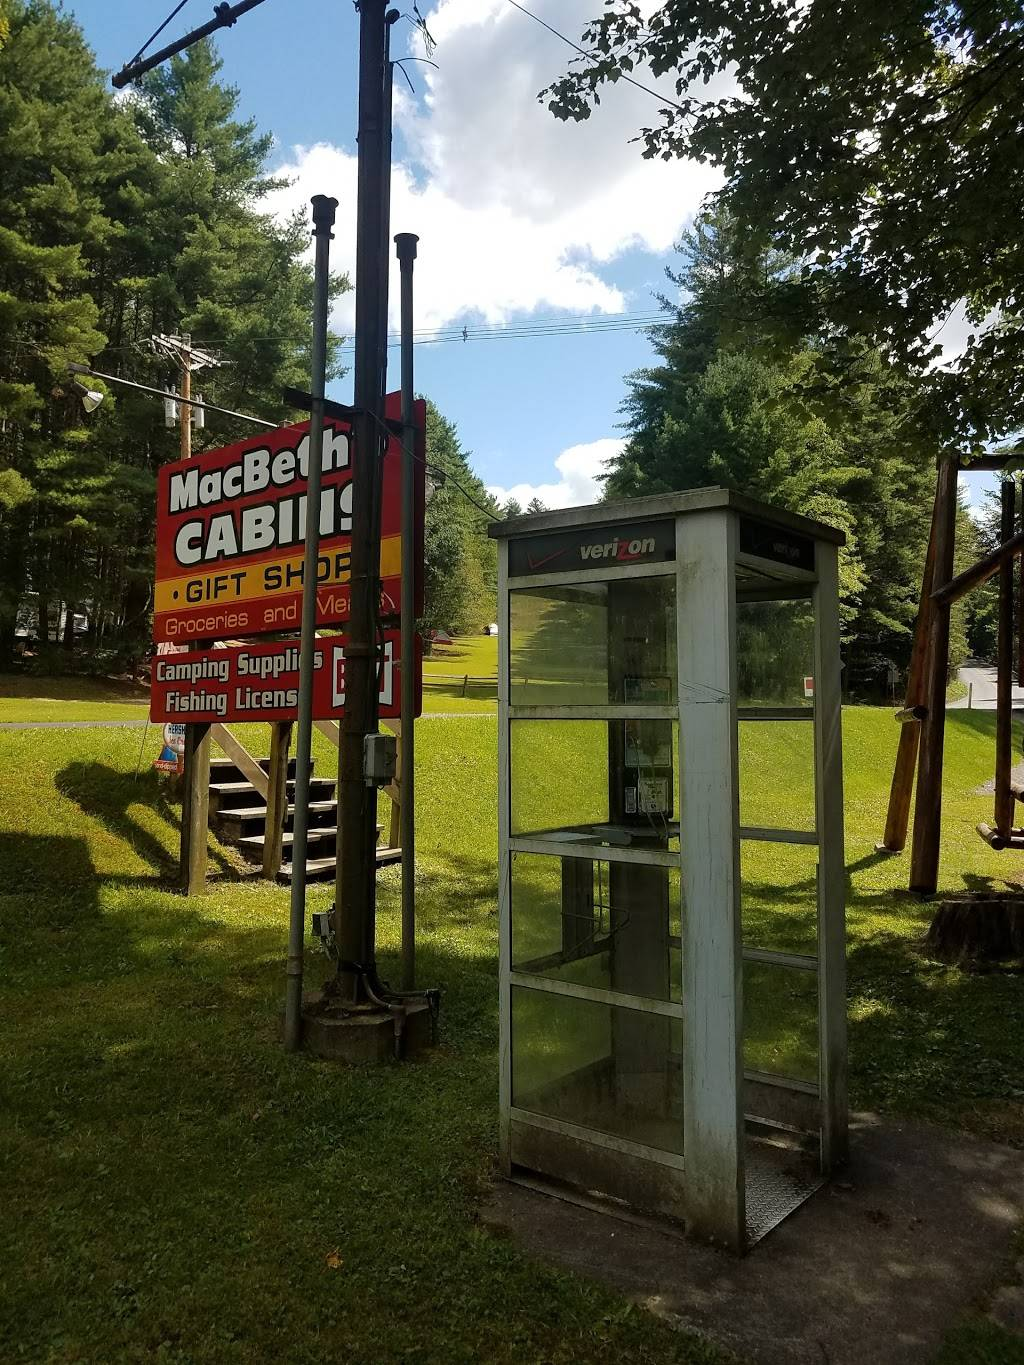 MacBeths Cabins and Country Store | meal takeaway | 15361 PA-36, Cooksburg, PA 16217, USA | 8003316319 OR +1 800-331-6319